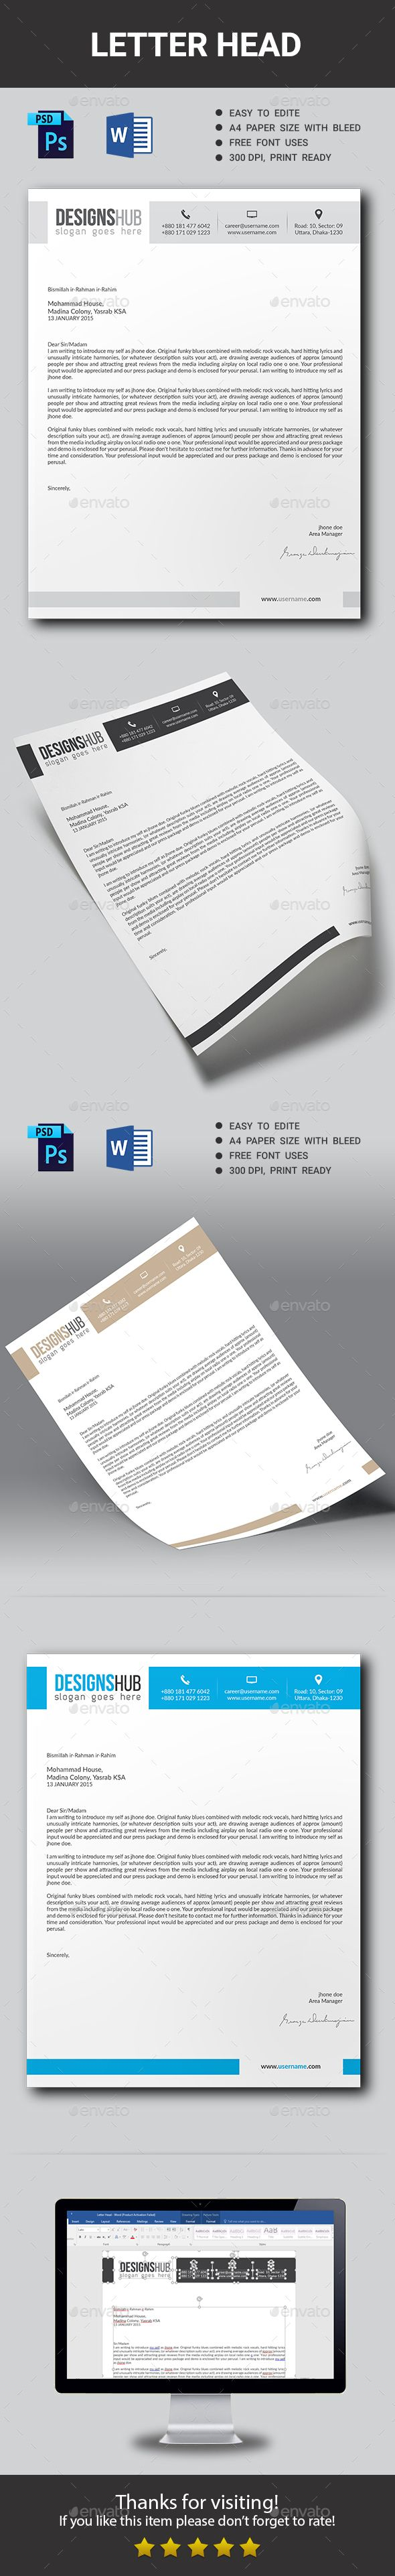 best 25 business letter head ideas on pinterest